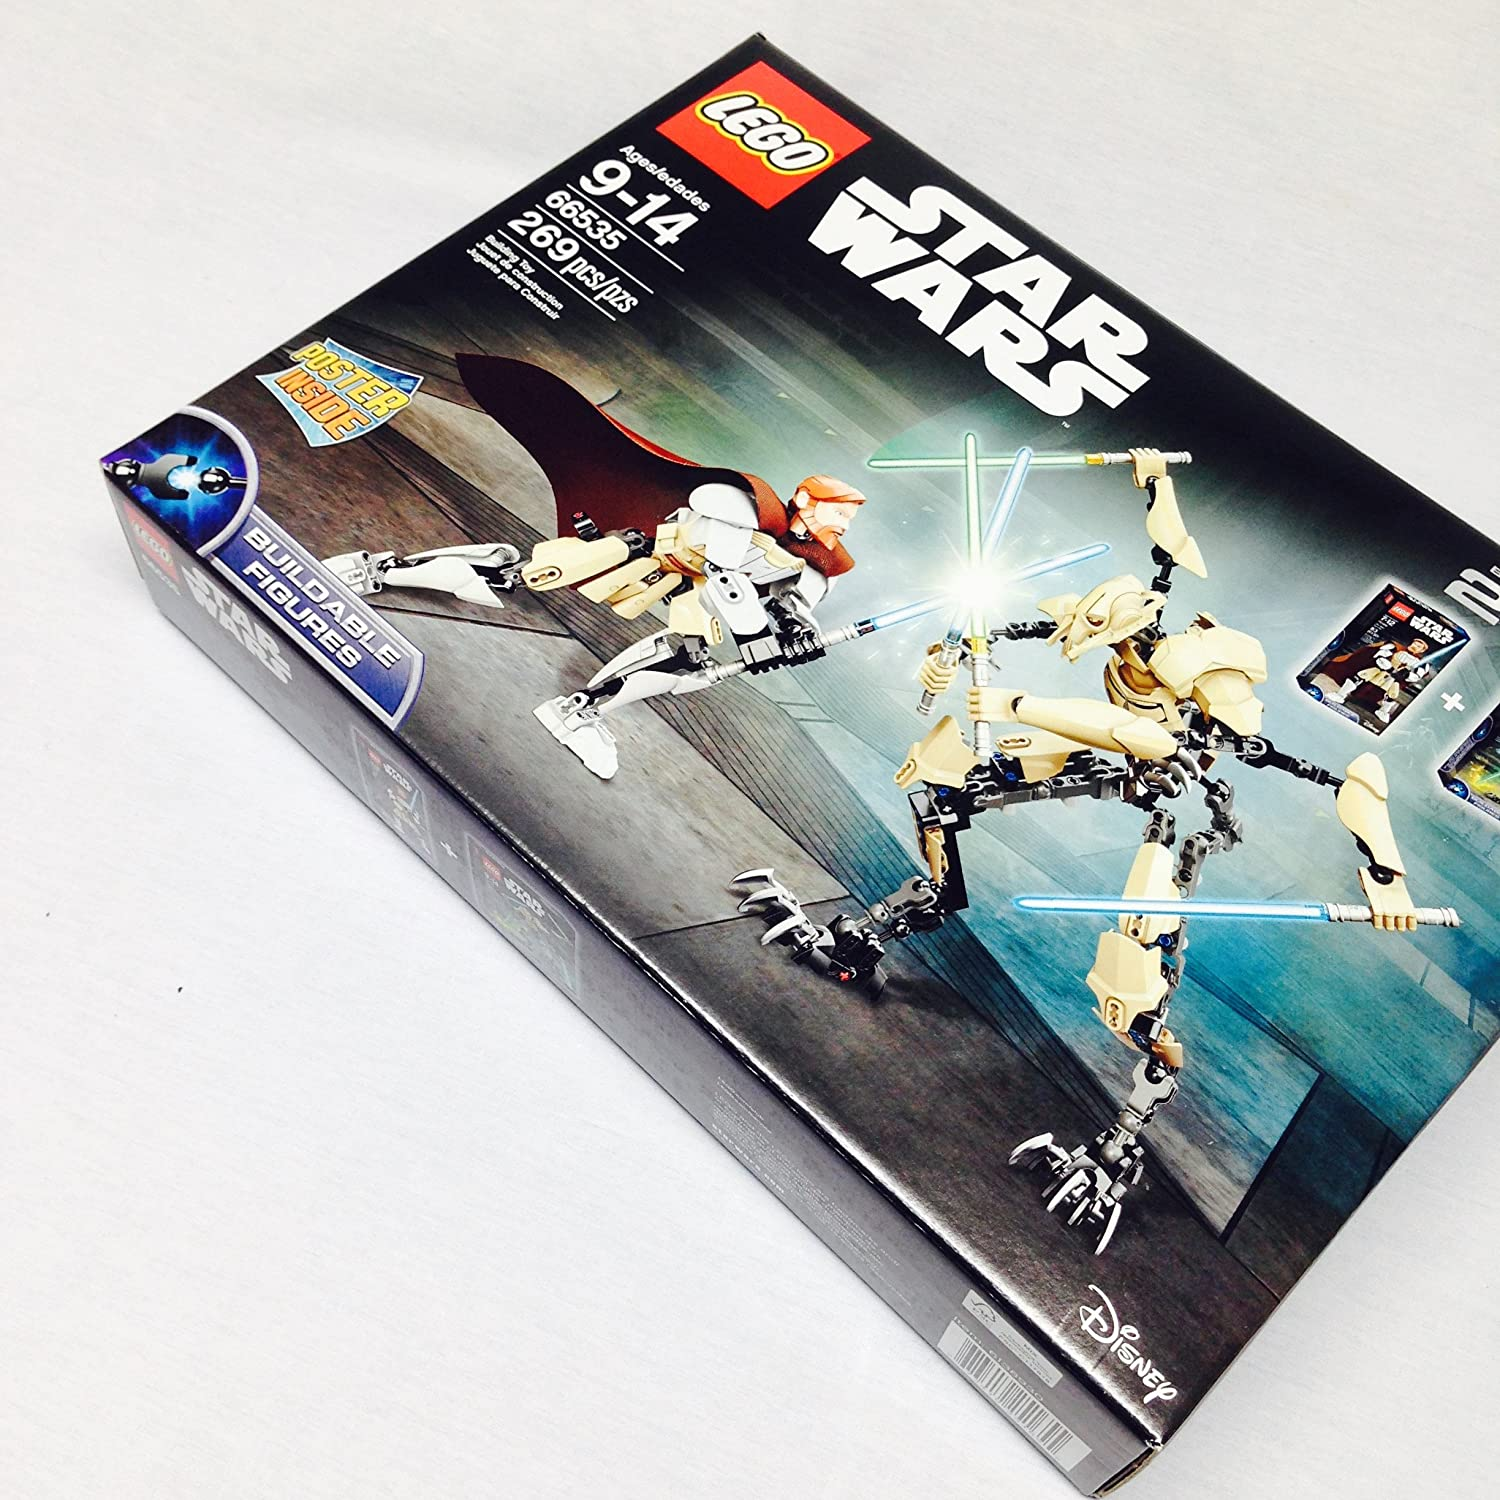 LEGO Star Wars 66535 Obi-Wan Kenobi vs. General Grievous Battle Pack